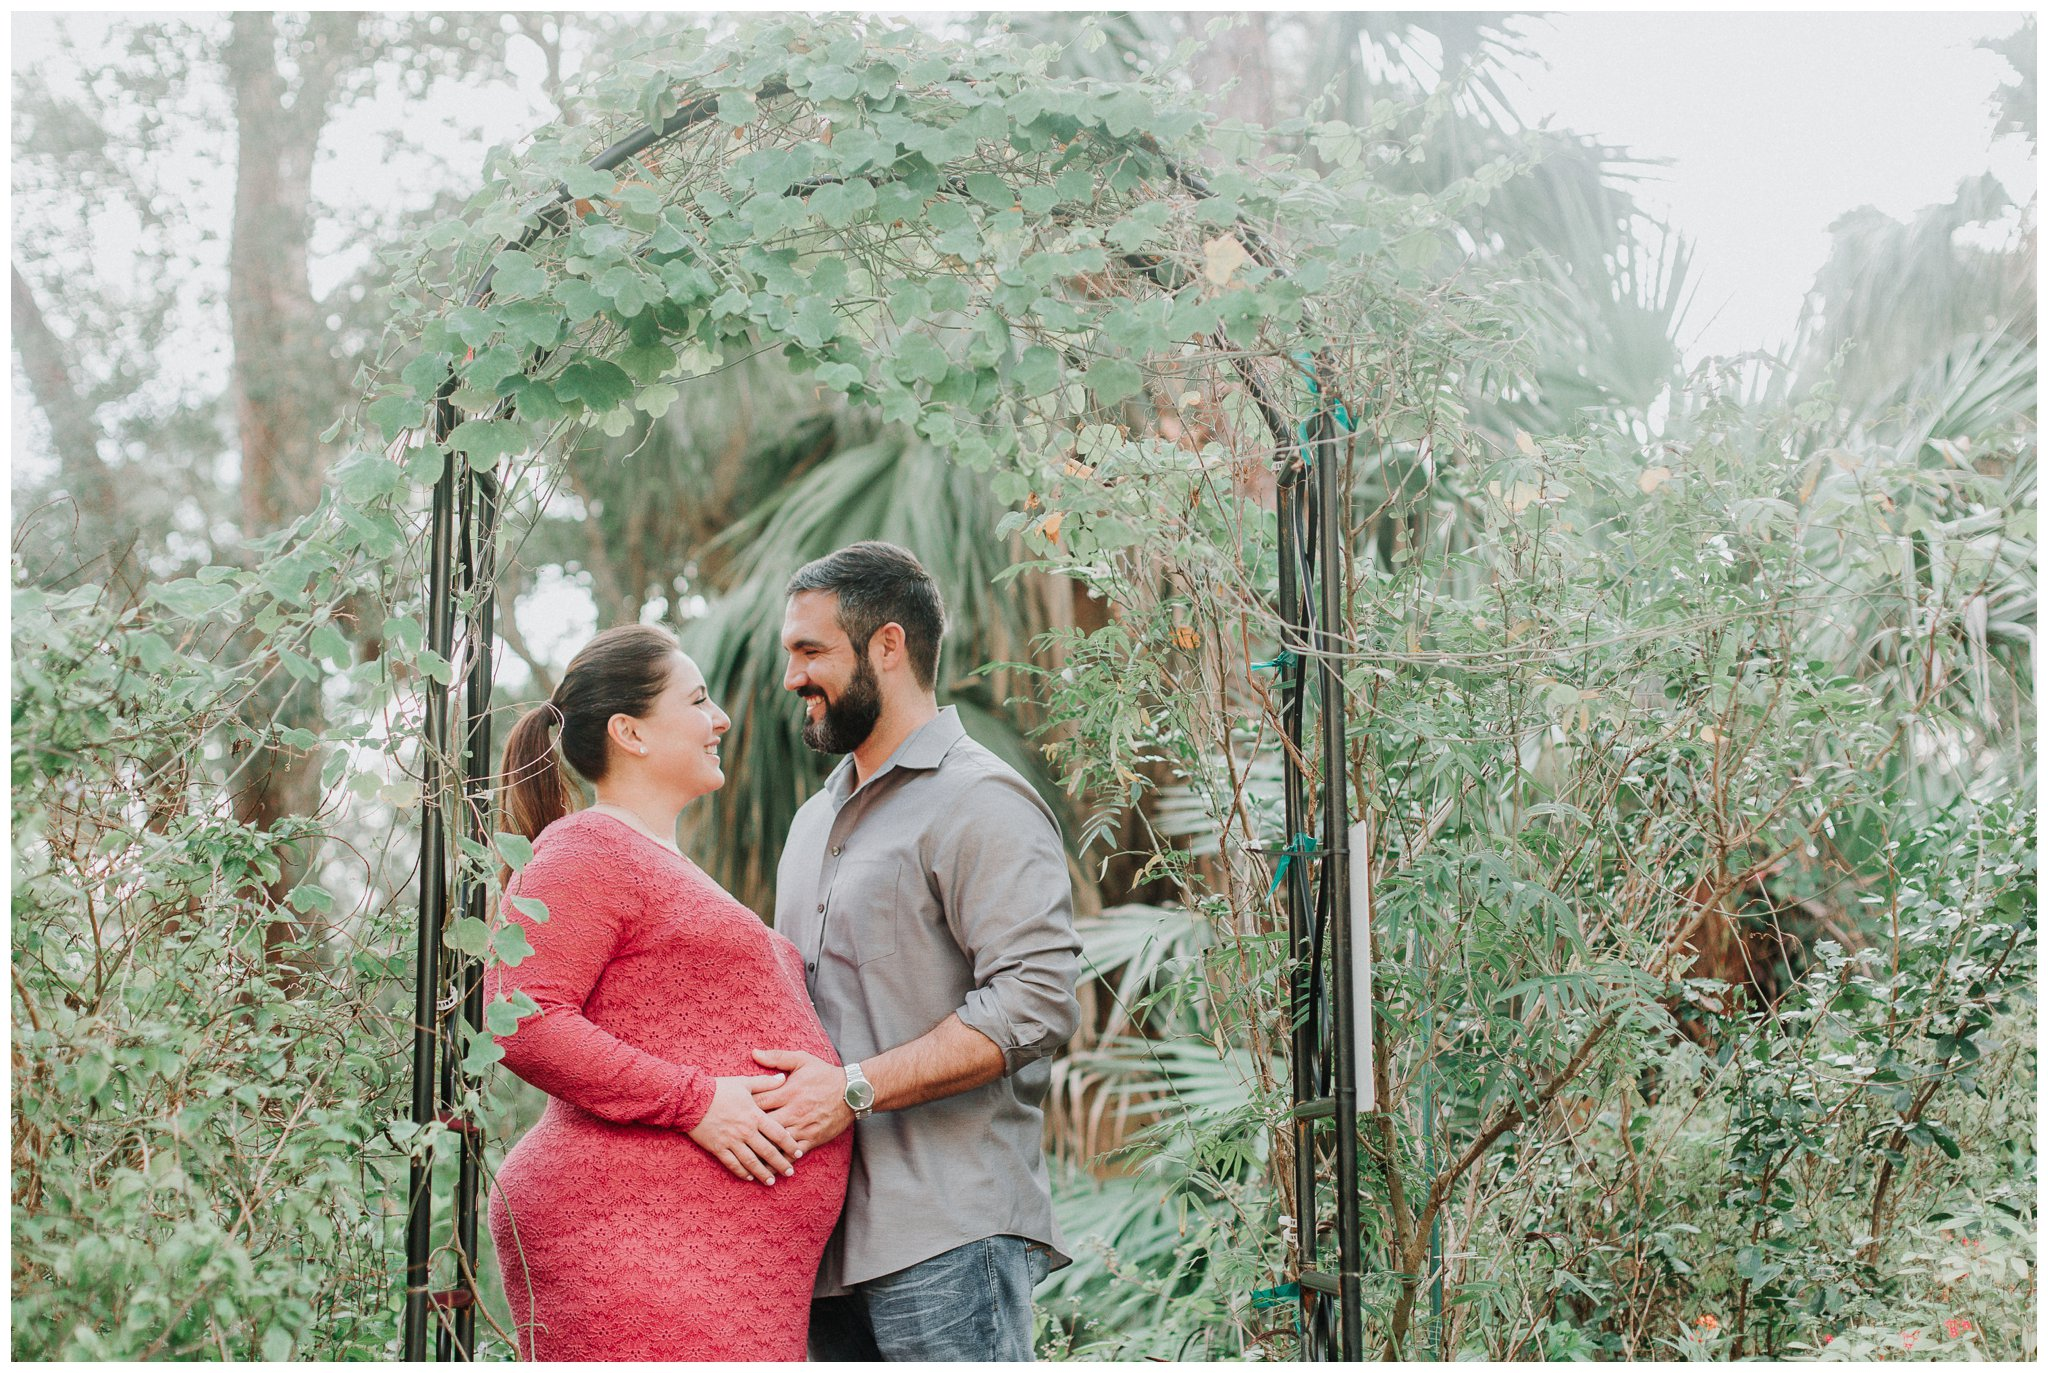 Kimberly Smith Photography- Sugar Sand Park- Sugar Sand Park Maternity Photos- Boca Raton Photographer- Palm Beach Photographer- Jupiter Photographer- Stuart Florida Photographer_0012.jpg